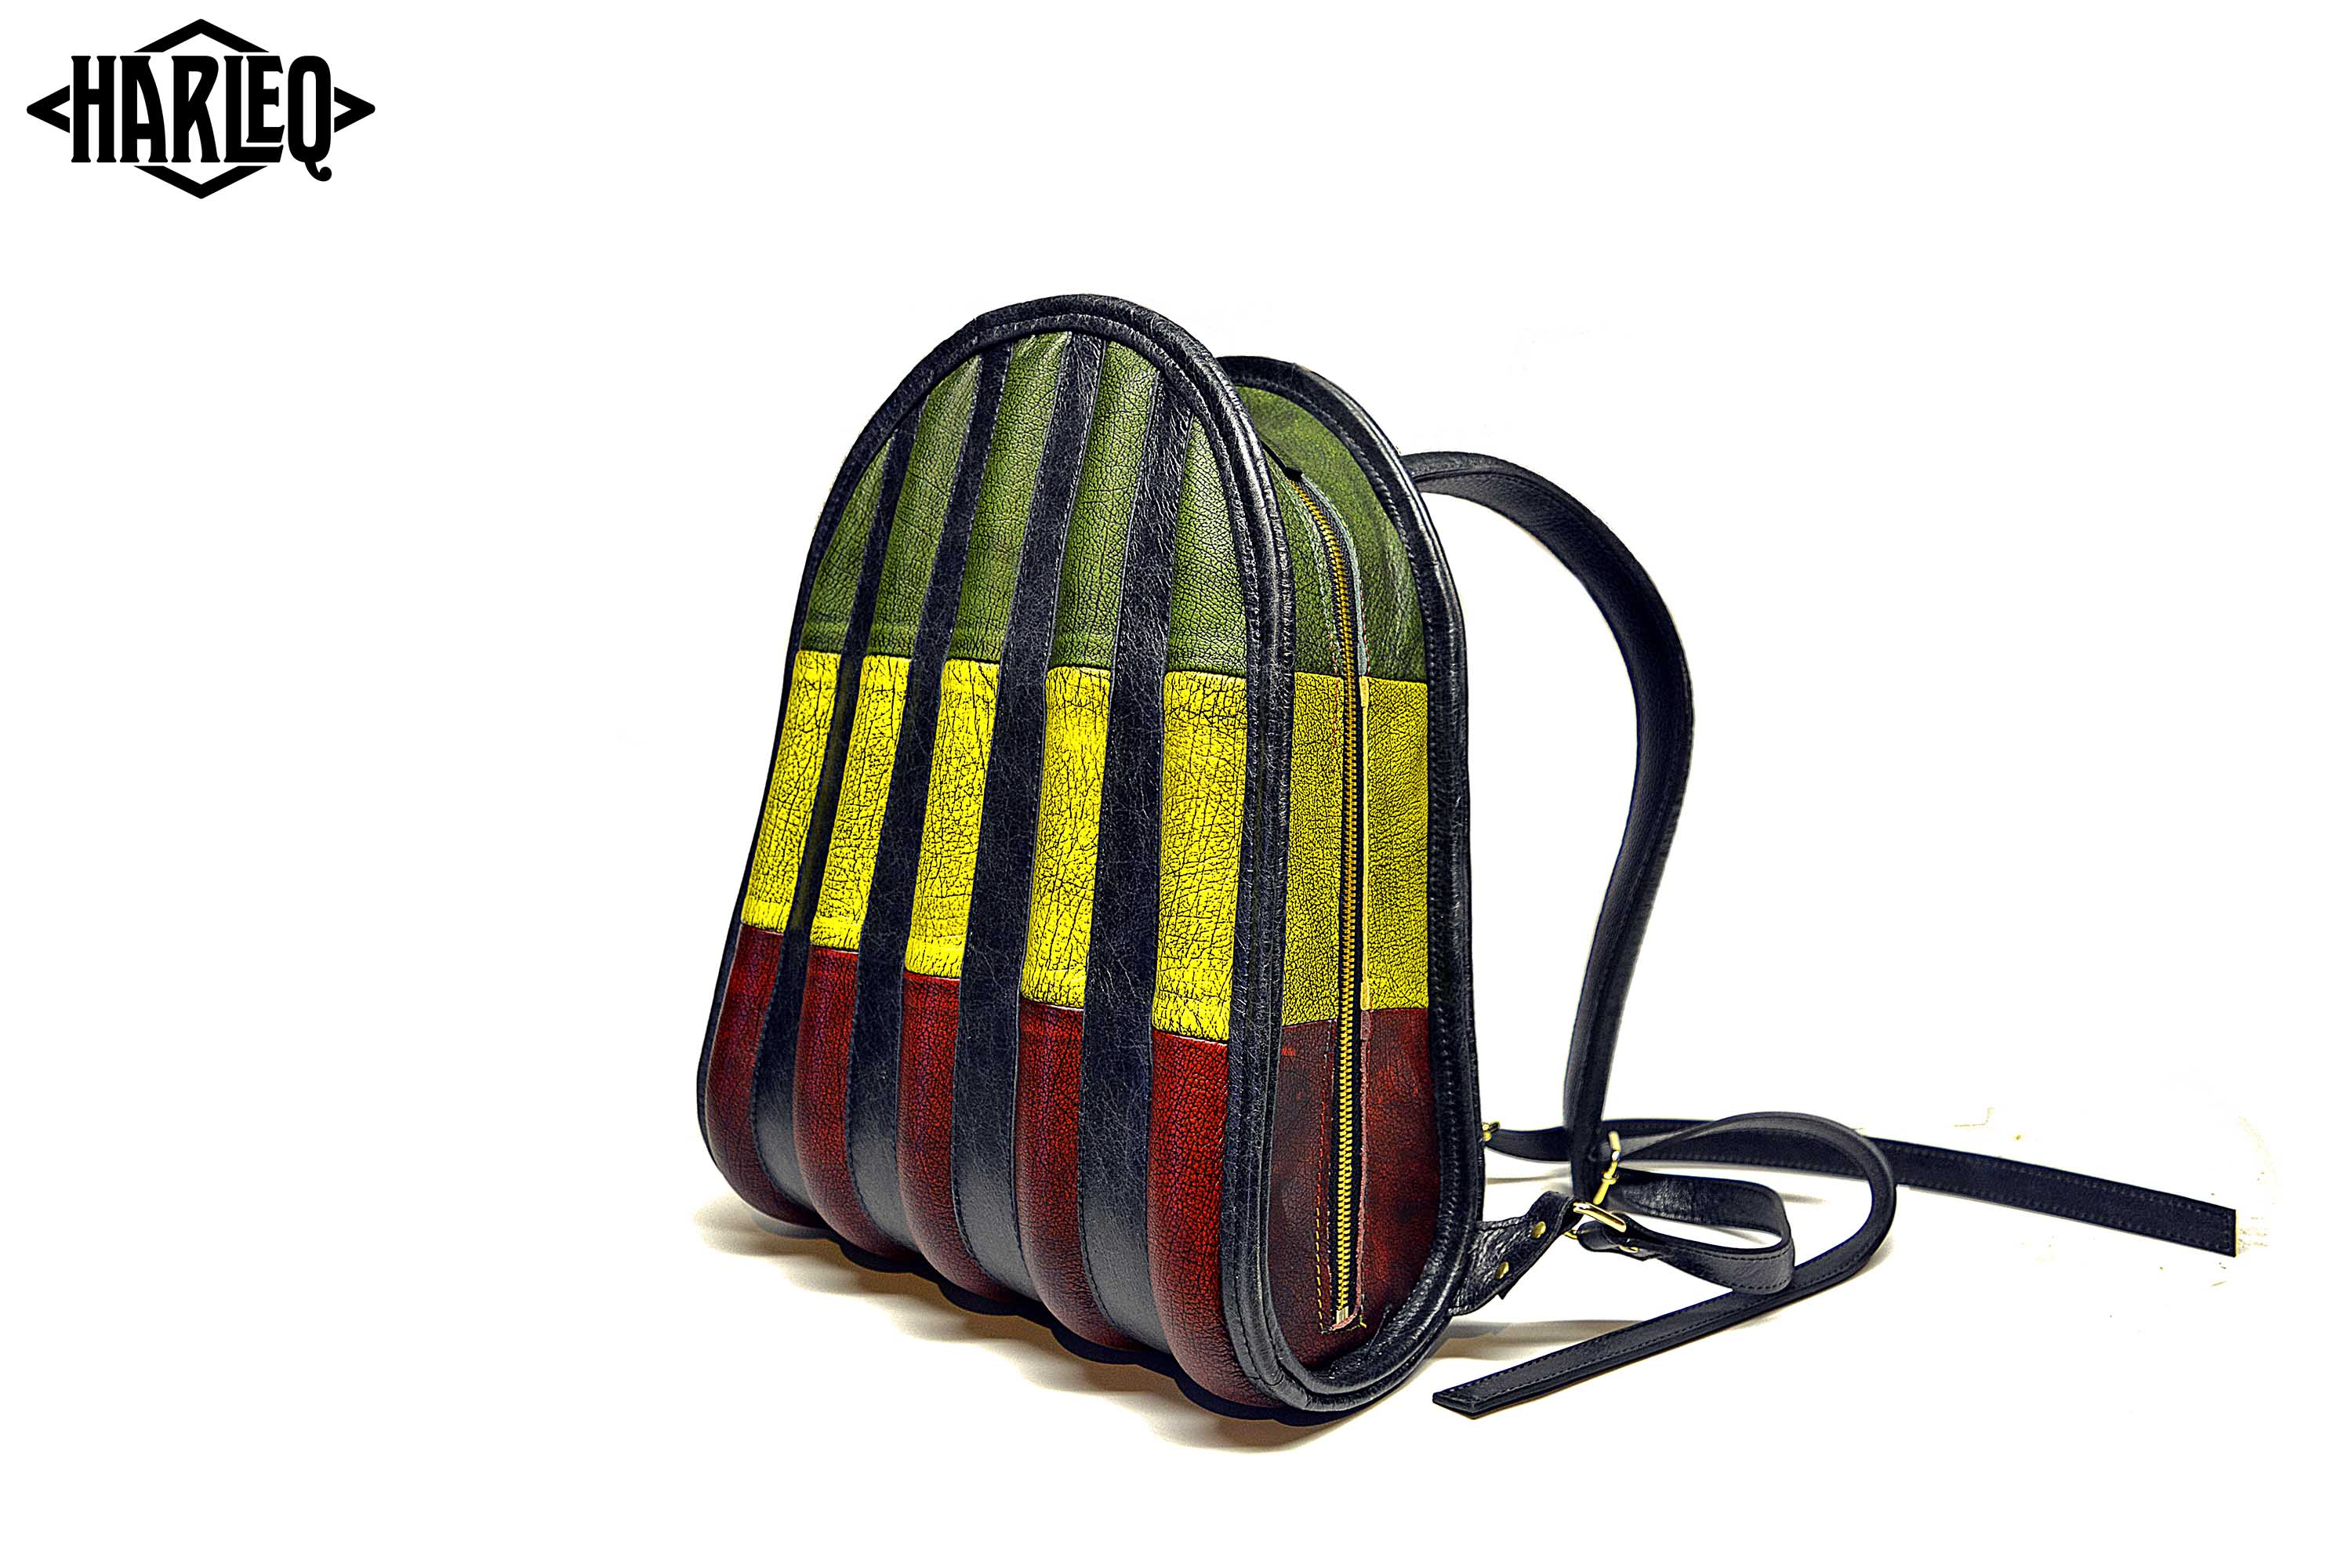 harleq-backpack-red-yellow-green-leathers